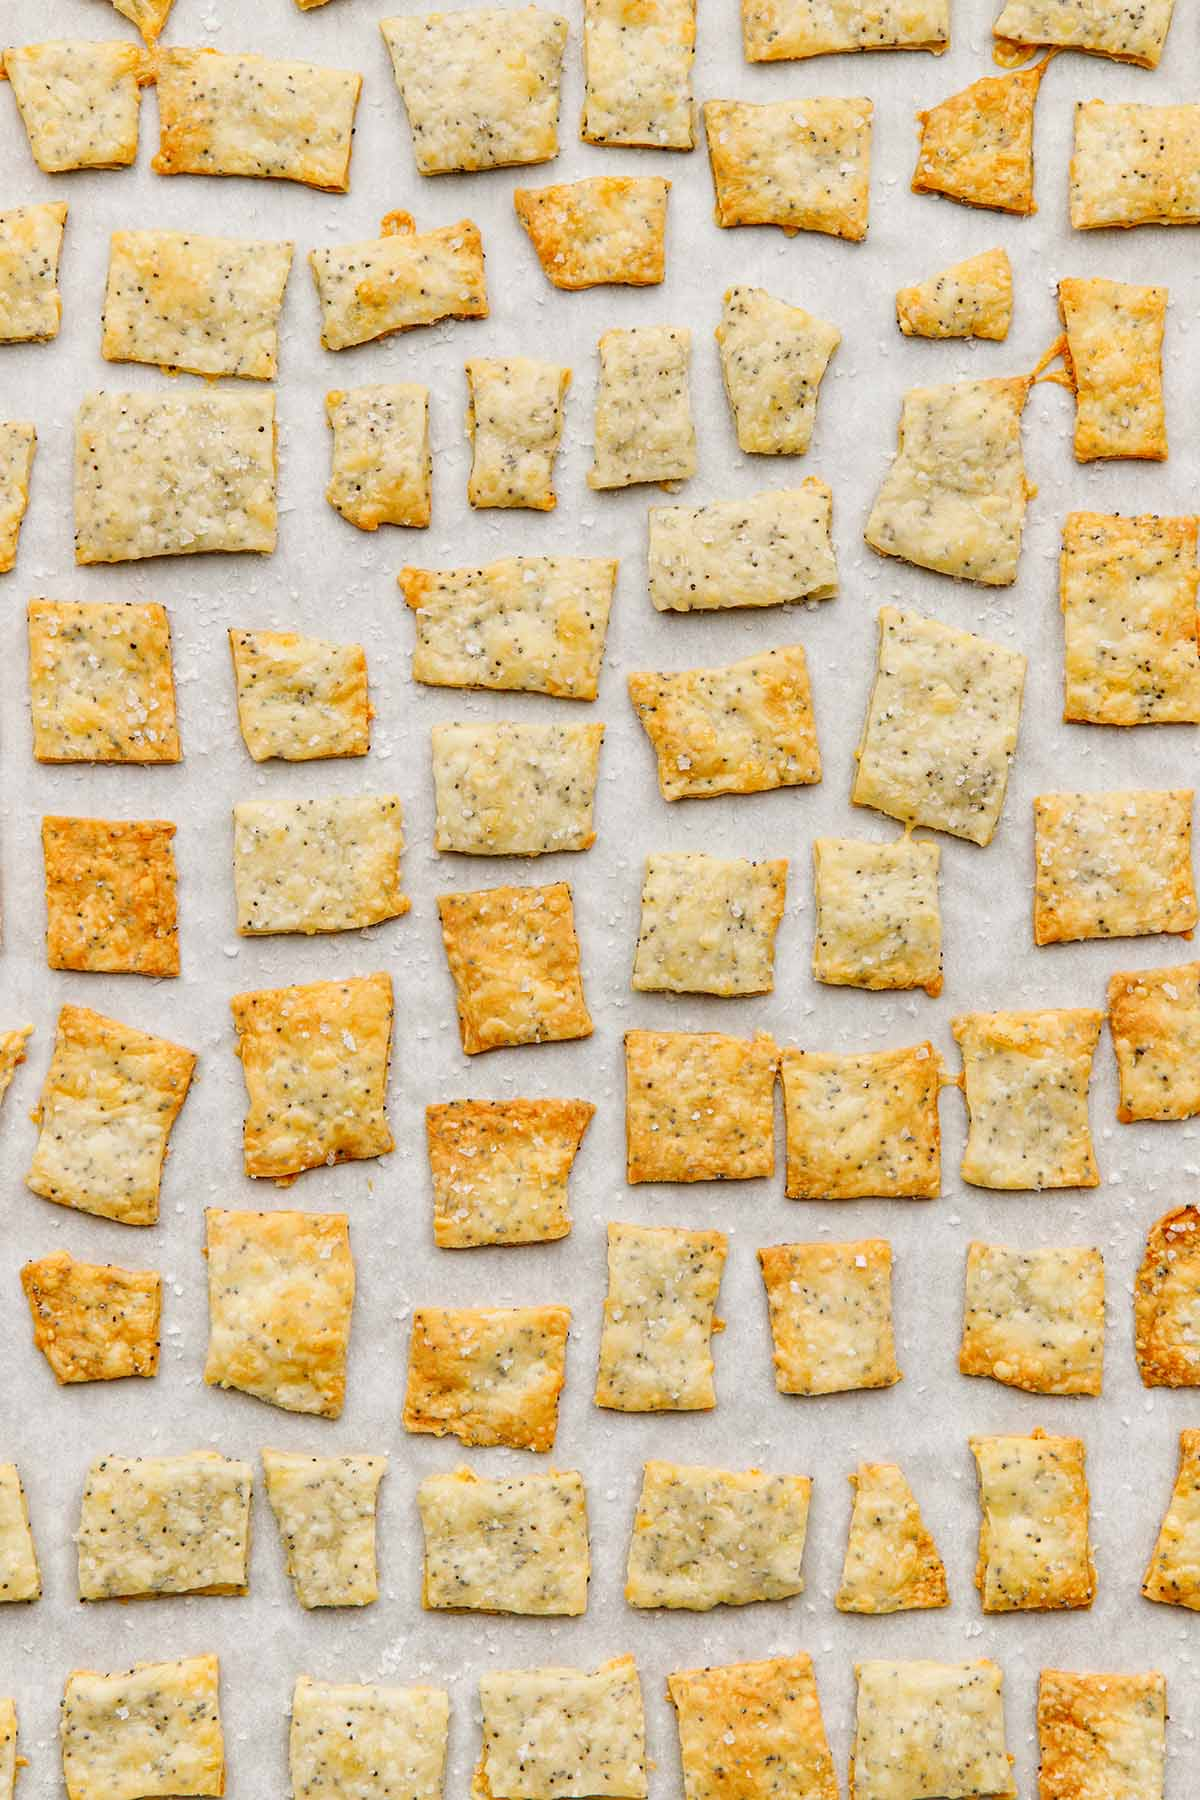 Overhead close up of a tray of  homemade white cheddar crackers.